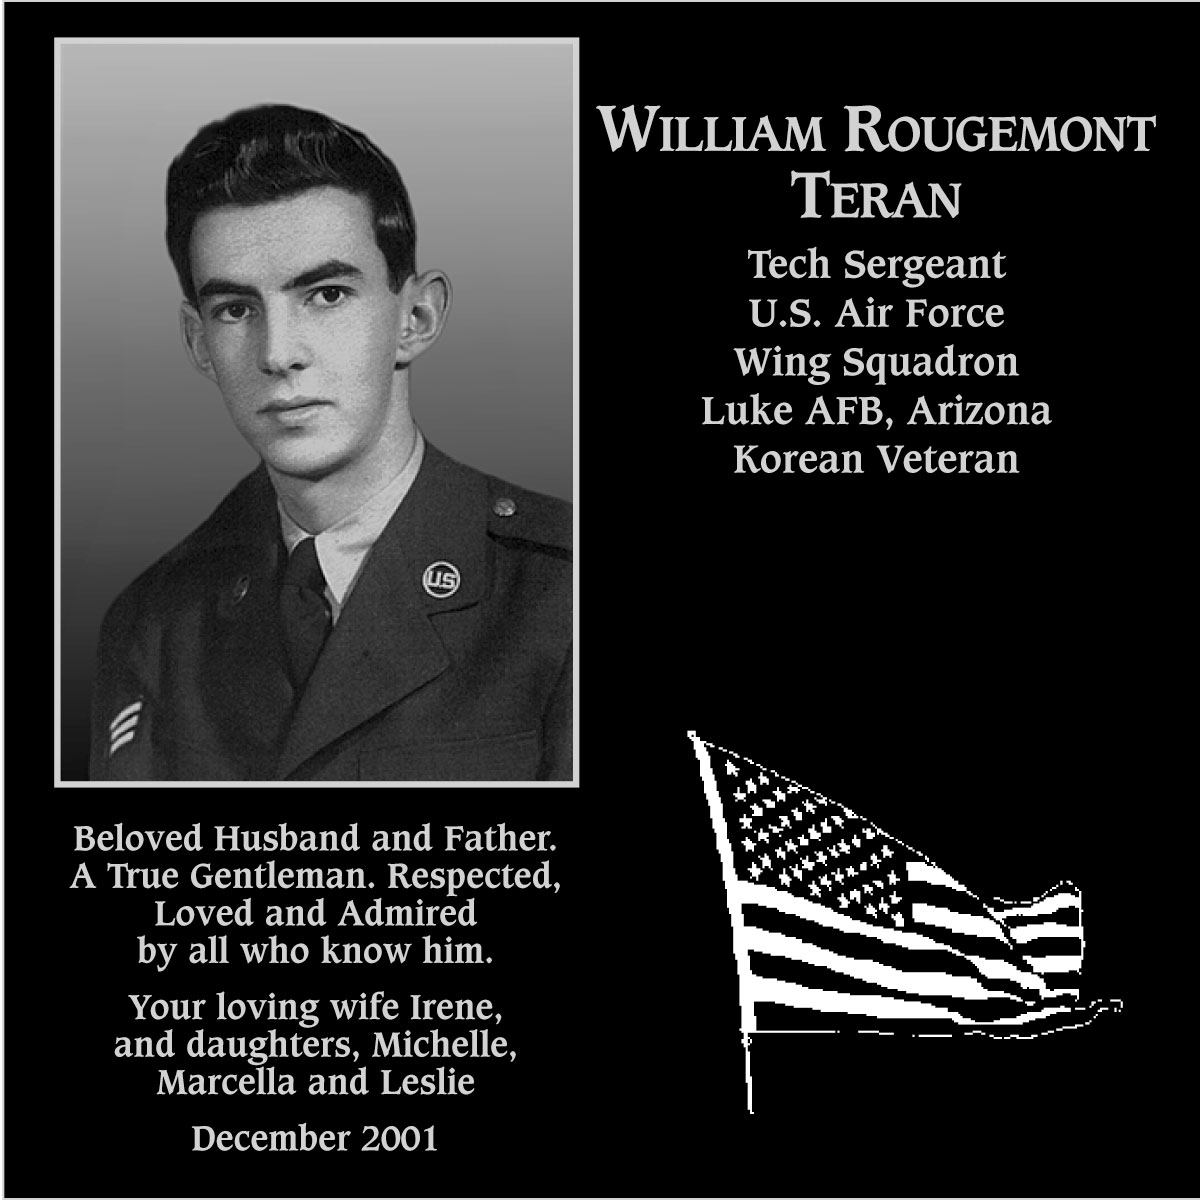 William Rougemont Teran